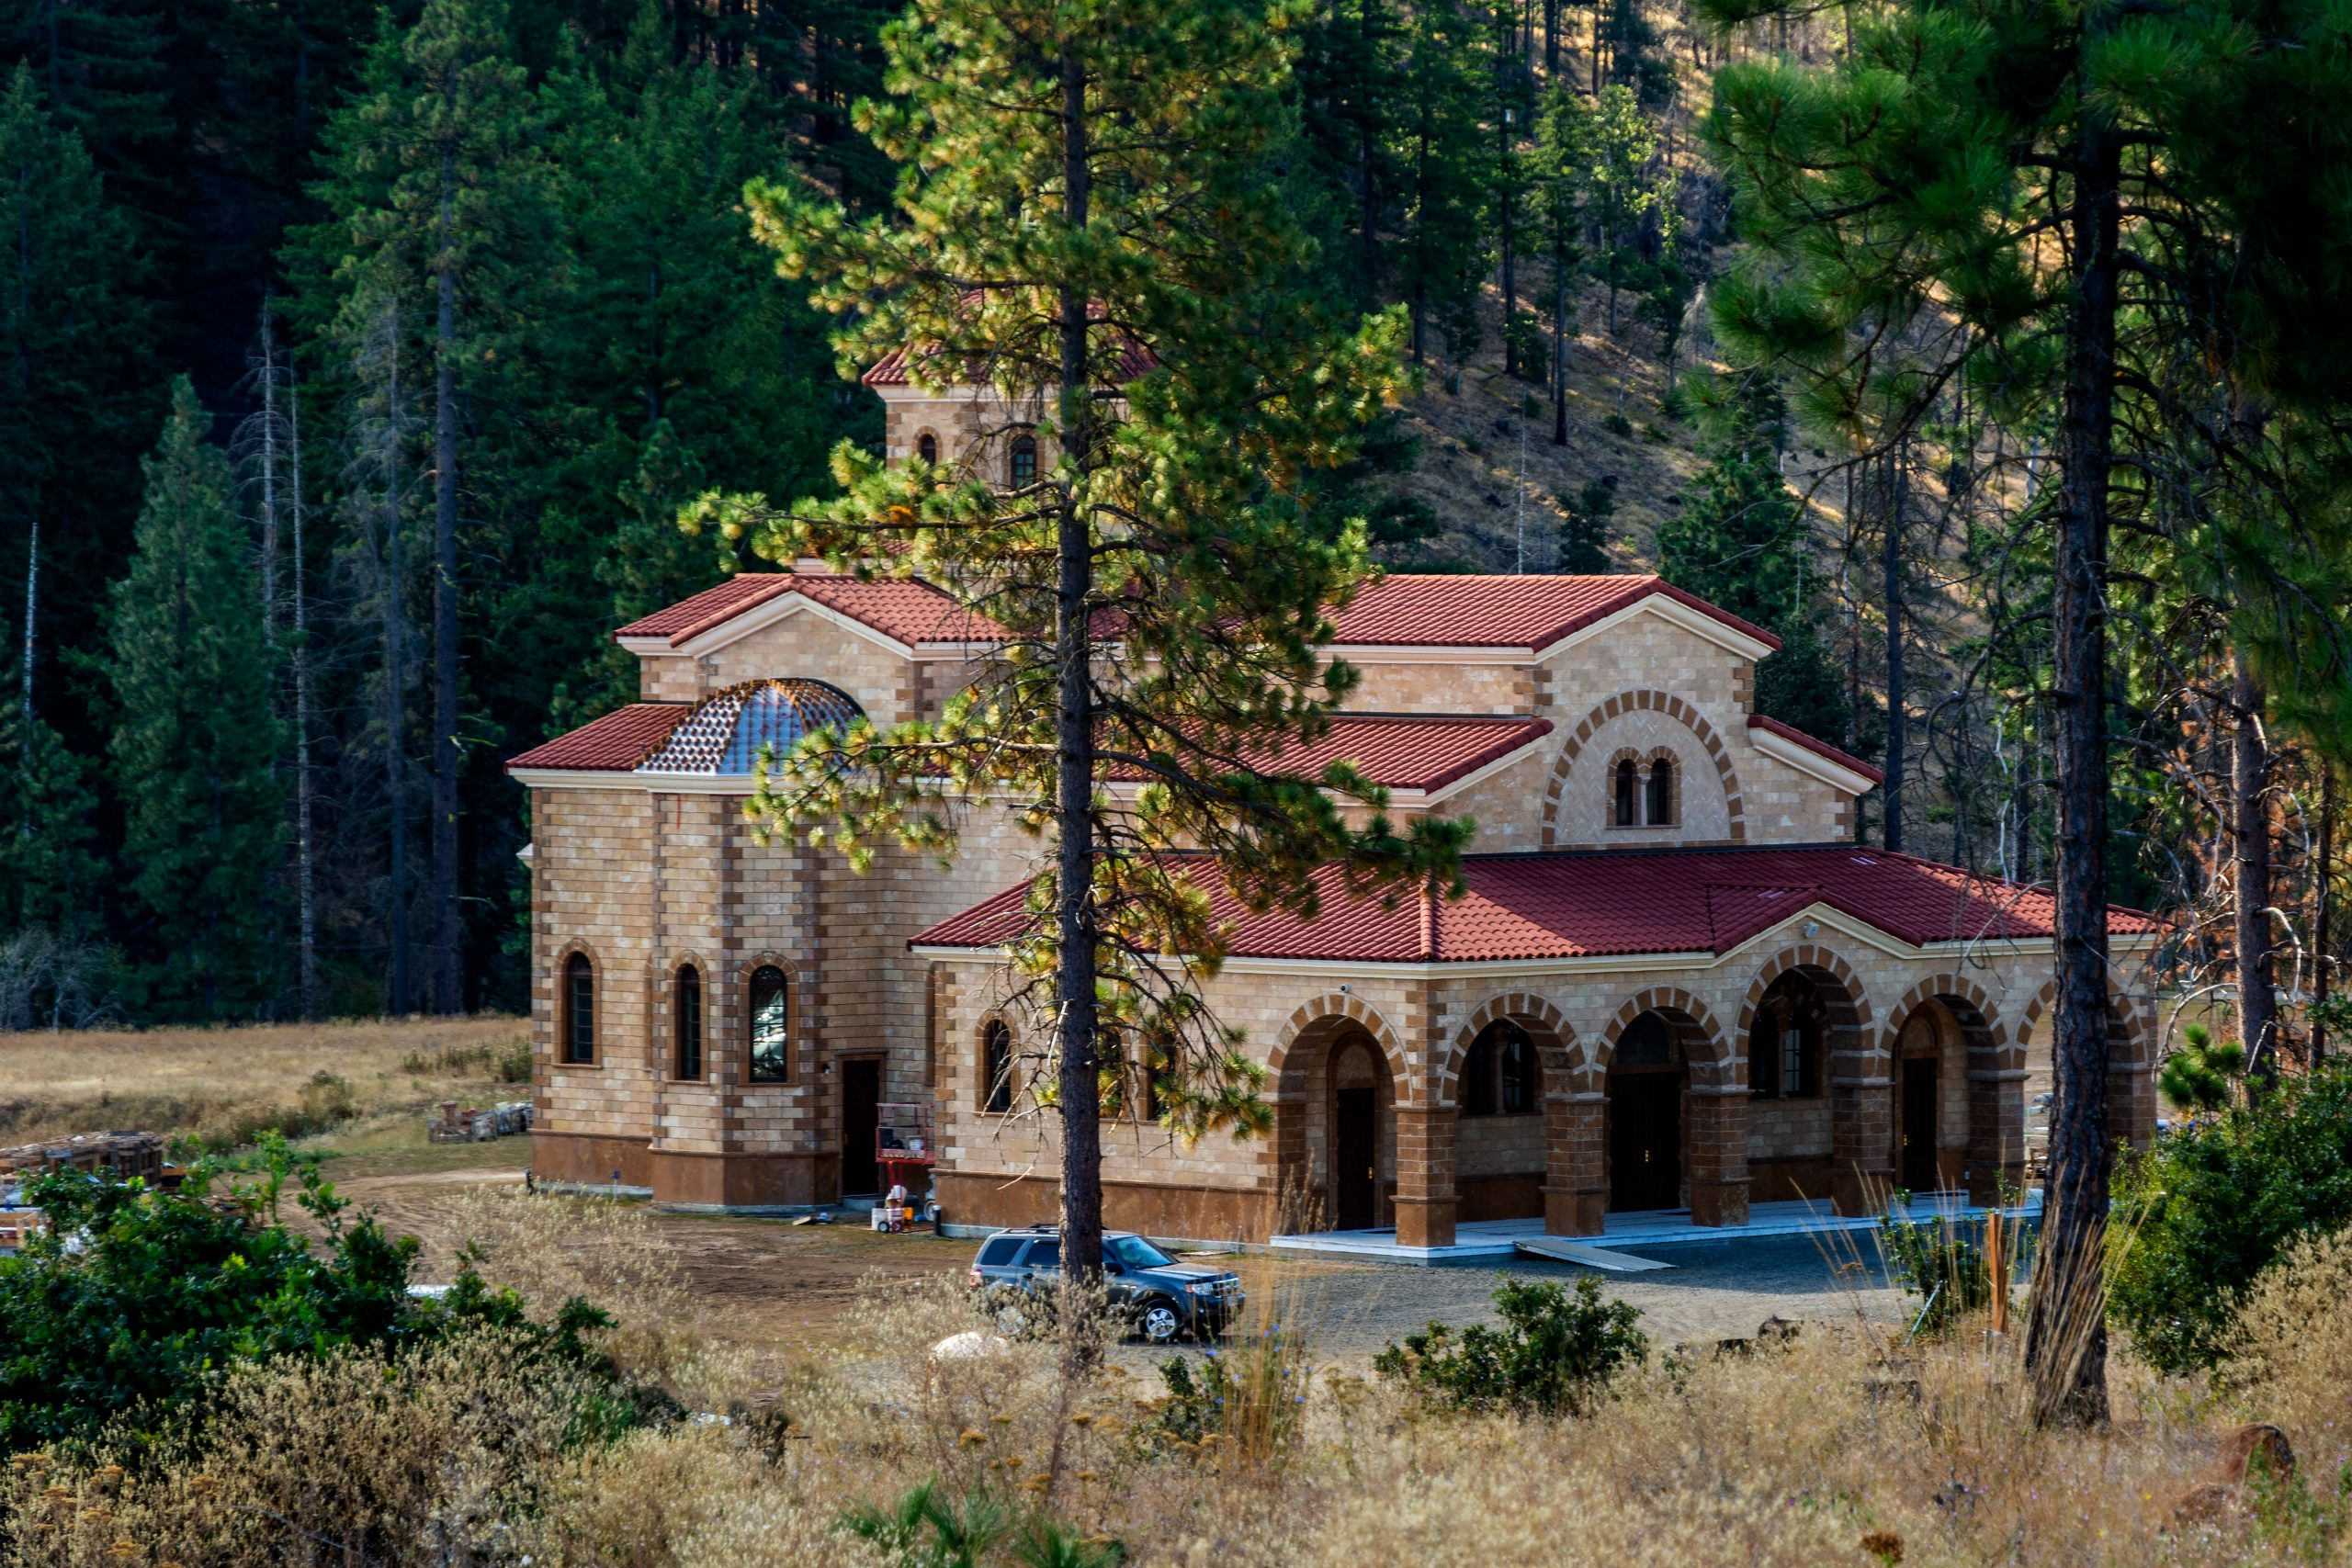 The Monastery of St. John Forerunner, Goldendale, Washington